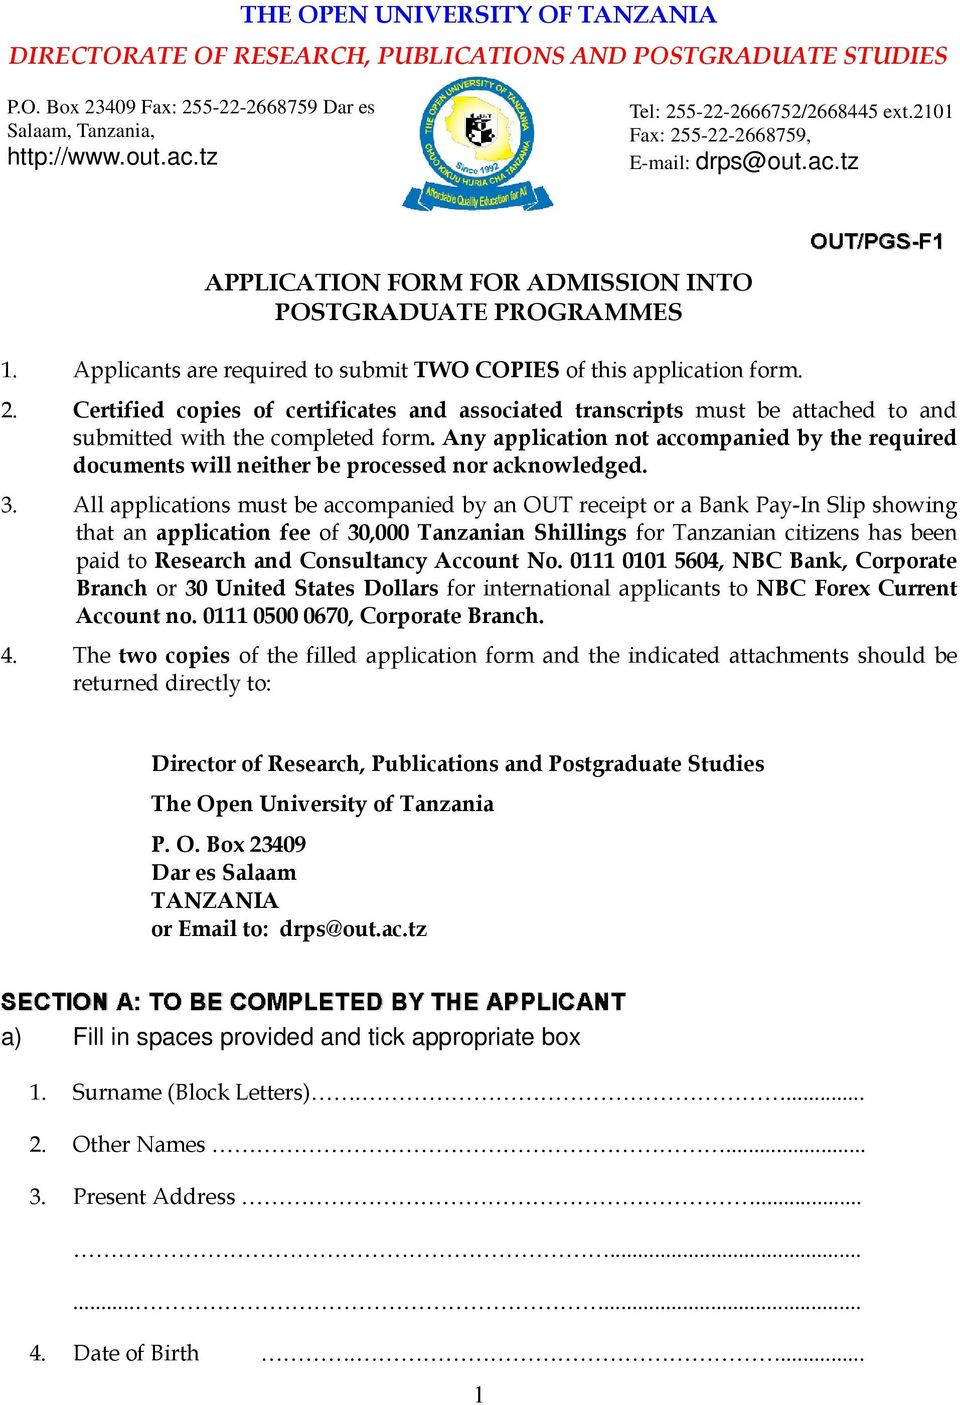 Applicants are required to submit TWO COPIES of this application form. 2. Certified copies of certificates and associated transcripts must be attached to and submitted with the completed form.